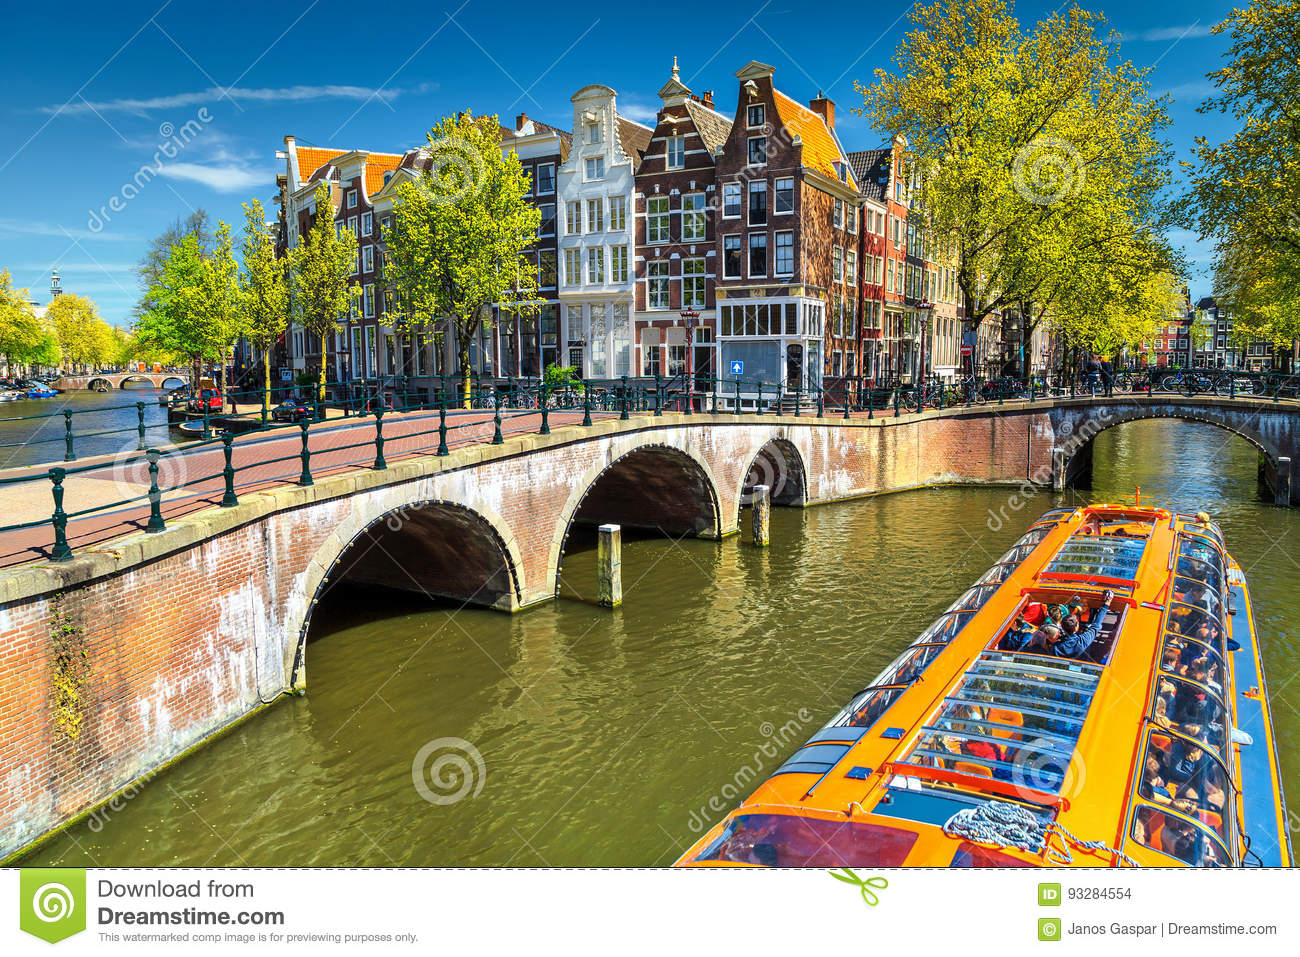 Typical Amsterdam canals with bridges and colorful boat, Netherlands, Europe